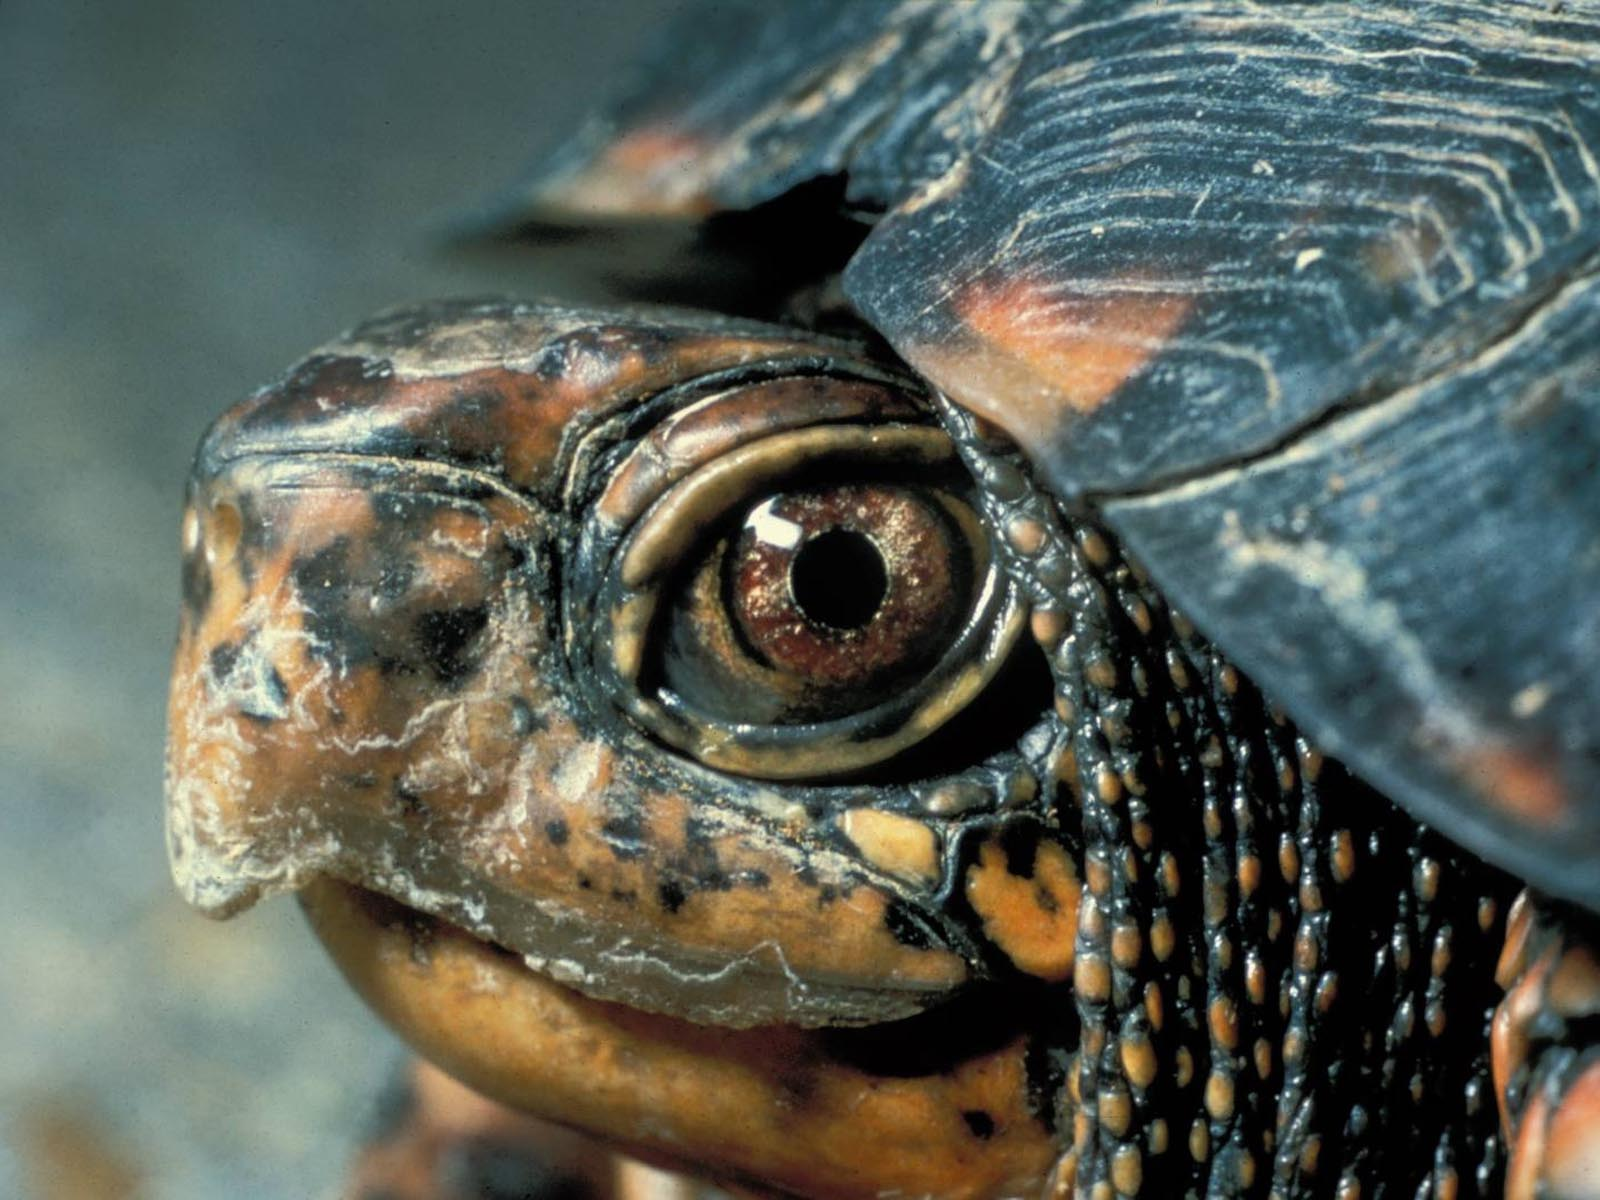 Eastern Box Turtle, Great Smoky Mountains National Park, Tennessee | Photo Credit: NPS